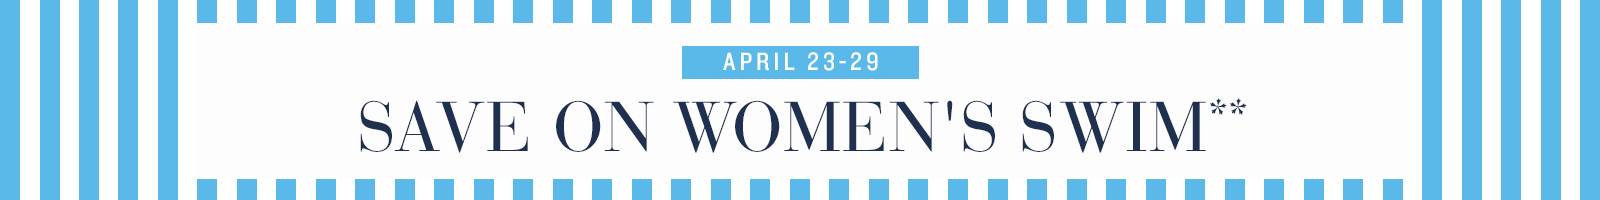 Save on Women's Swim April 23-29